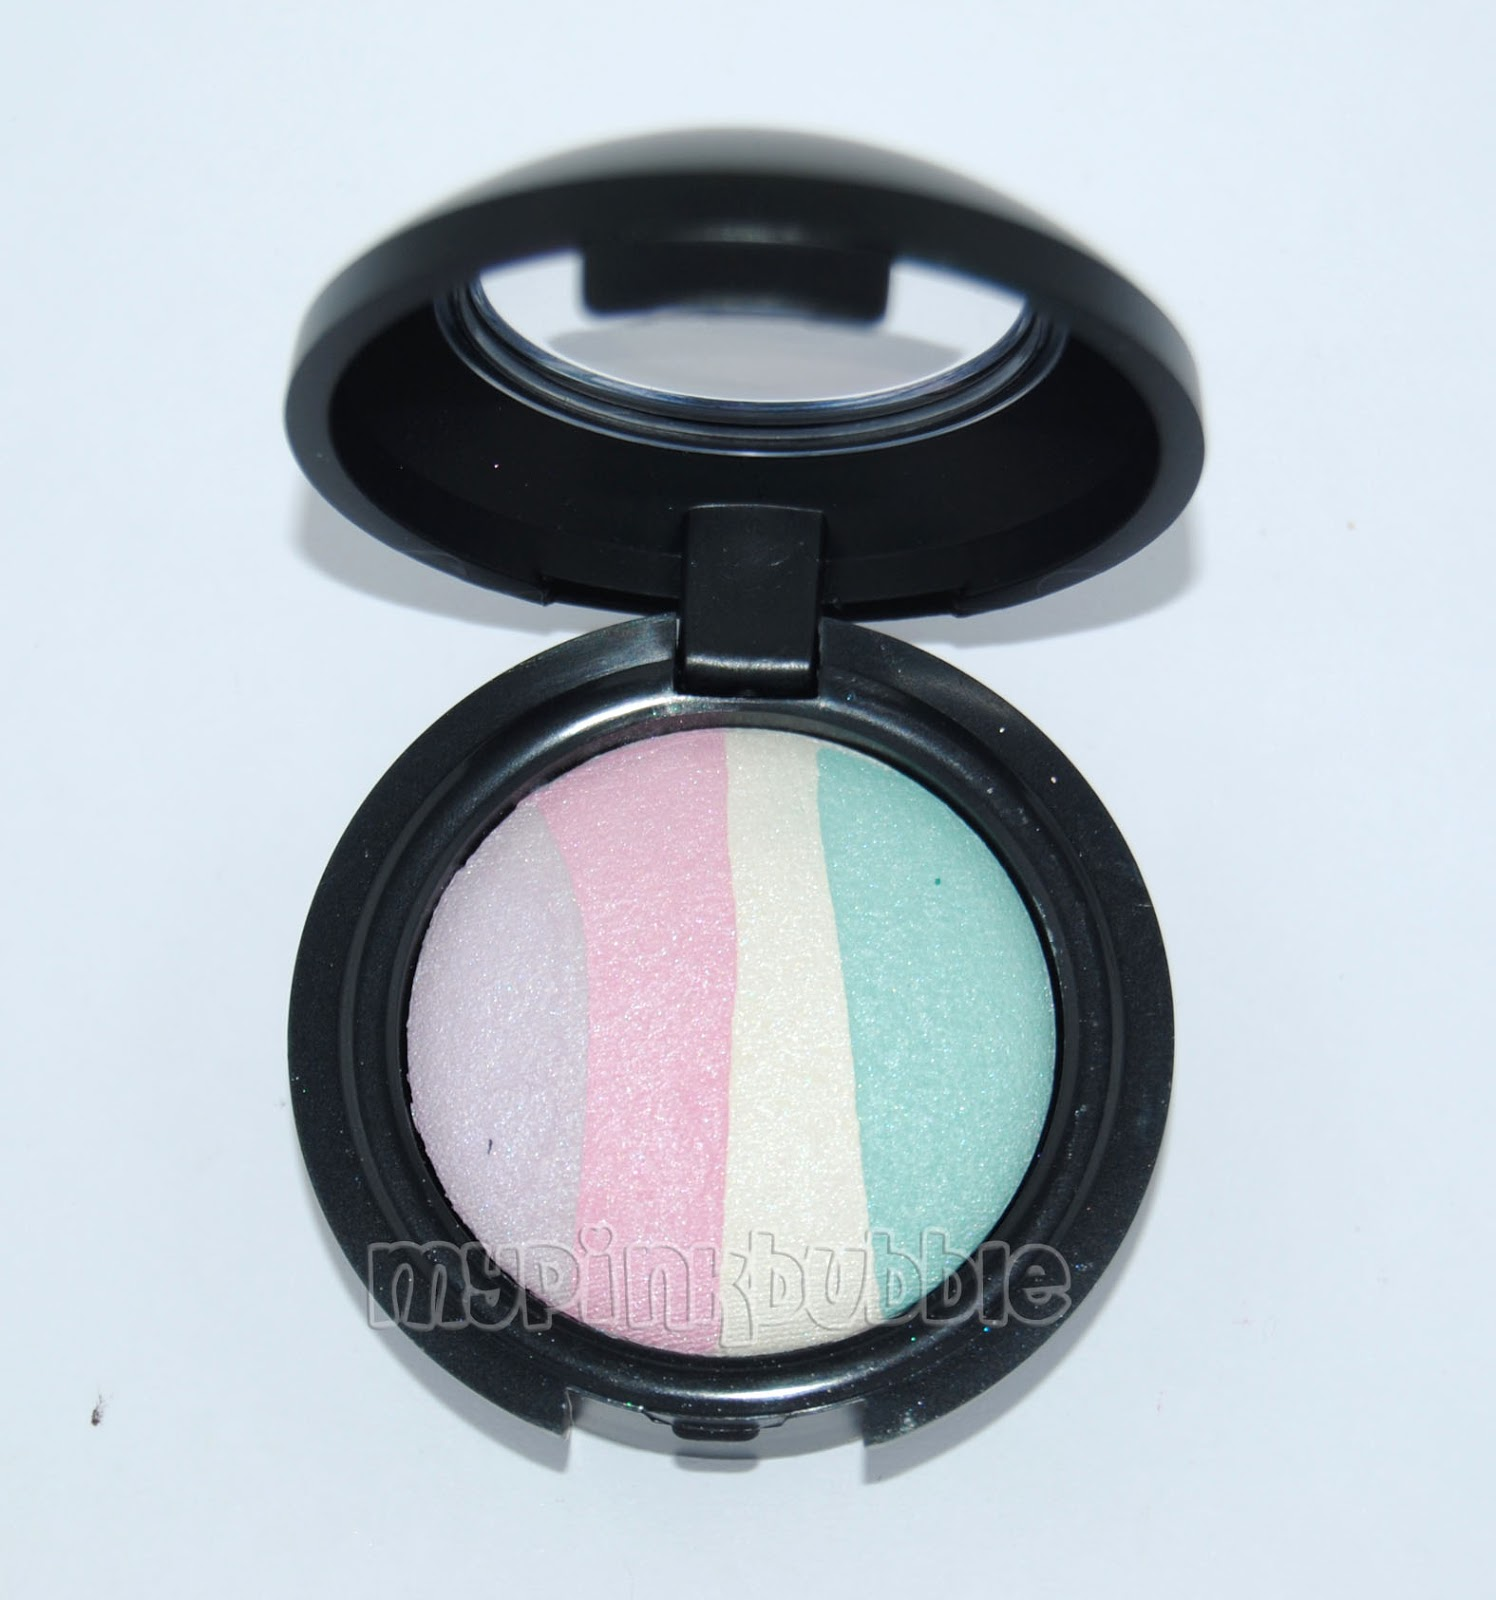 Ten image Dreams Eyeshadow